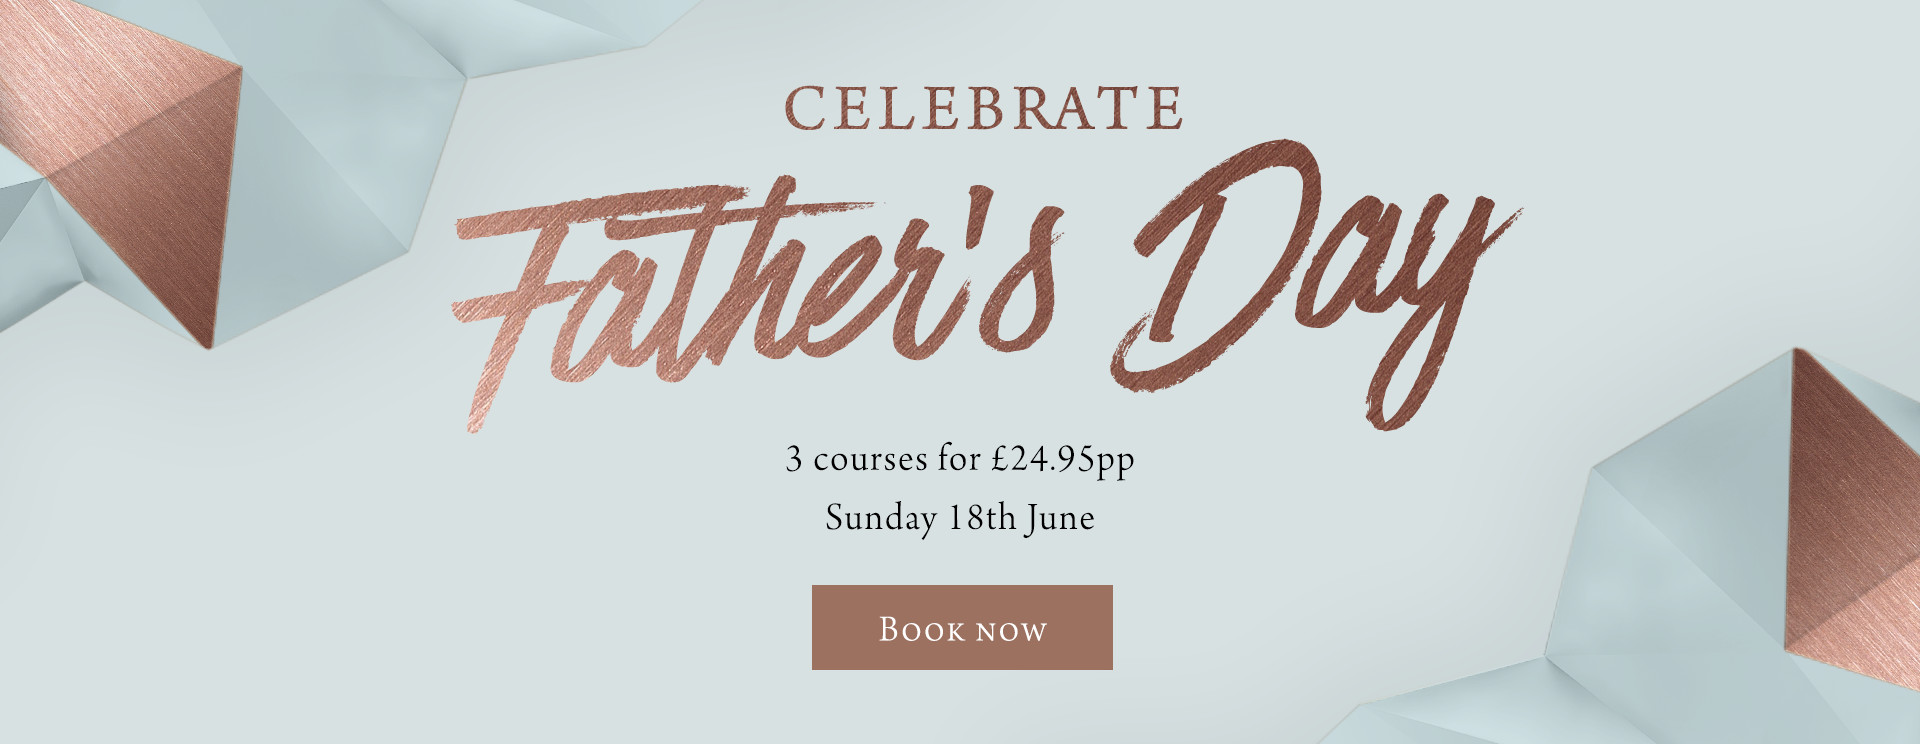 Father's Day at The Fox & Hounds - Book now